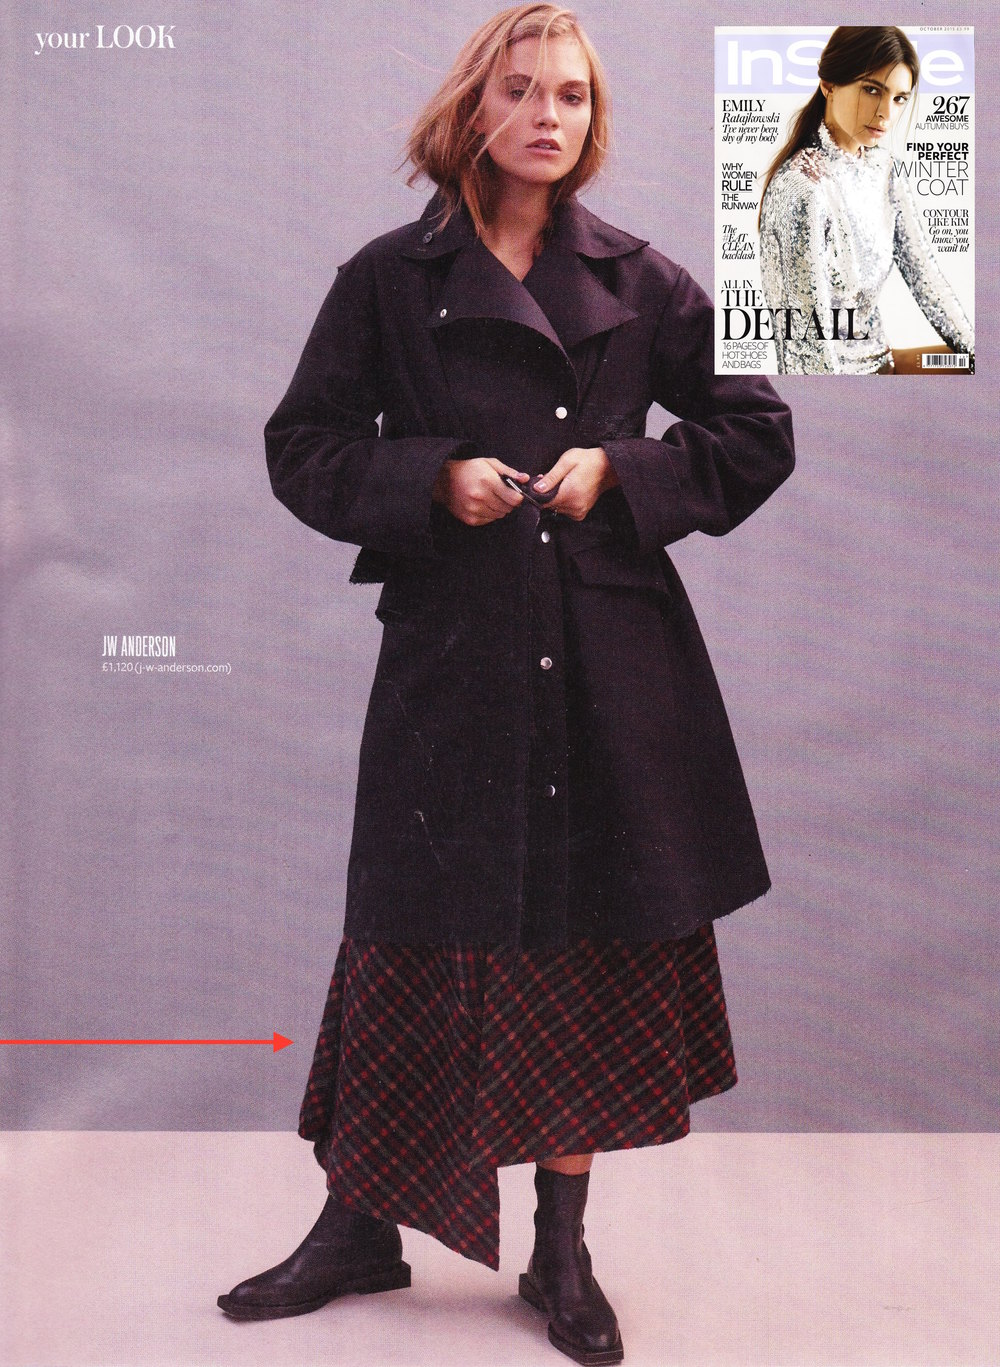 InStyle UK Oct15 page106.jpg